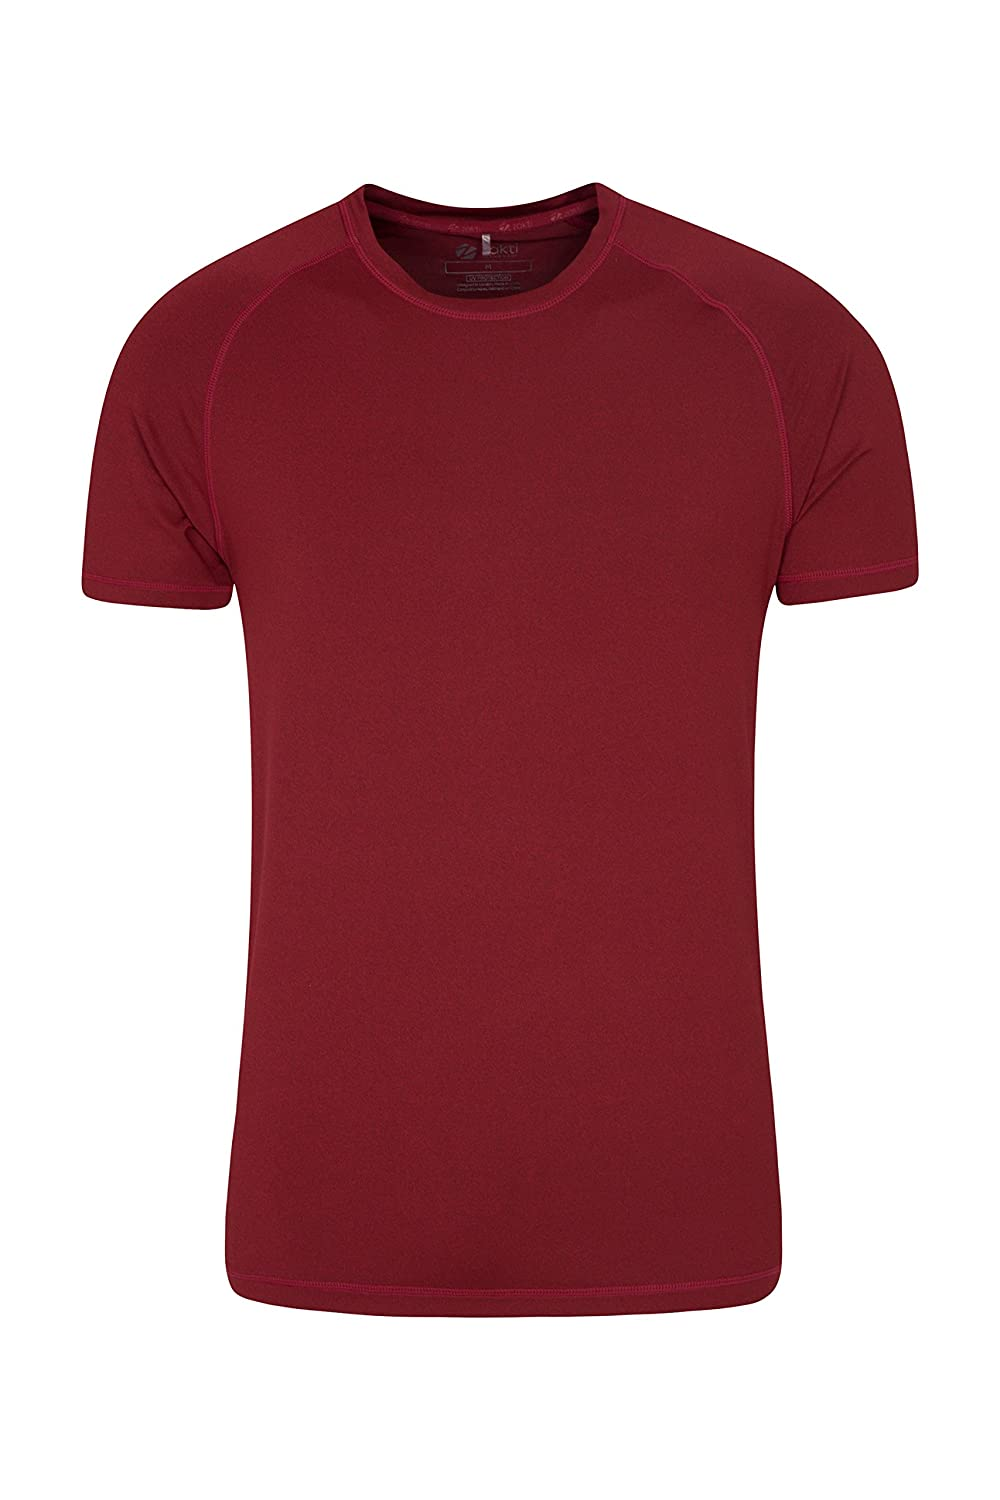 Mountain Warehouse Agra Mens Melange T-Shirt - Round Neck Tee